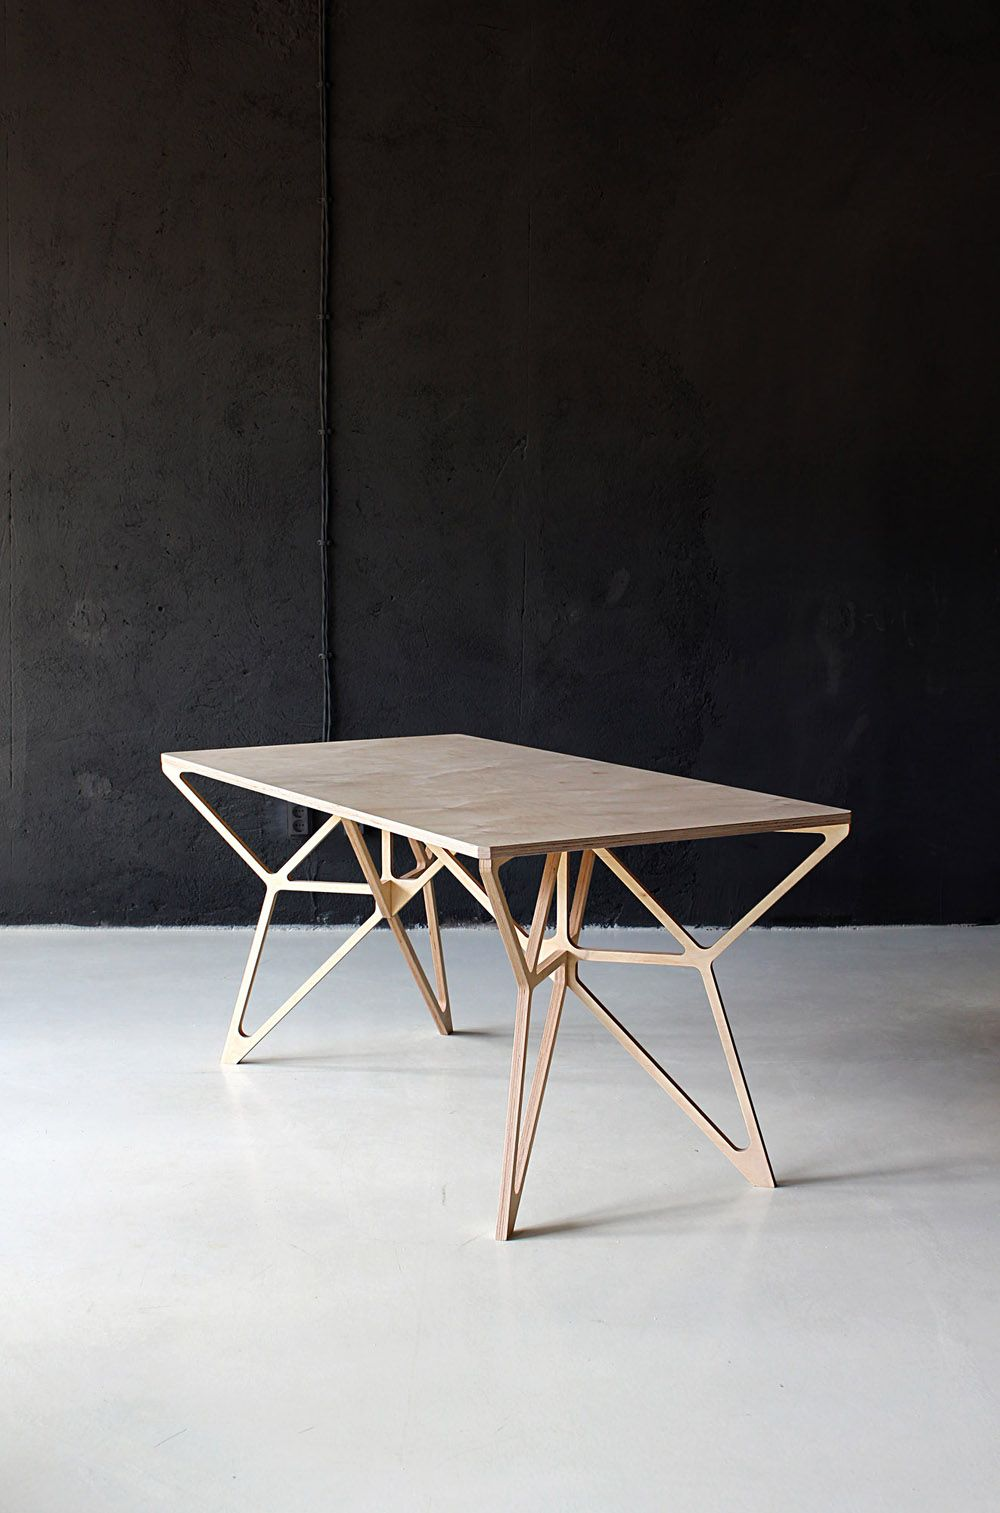 Plywood Furniture Collection By Dontdiy Plywood Table